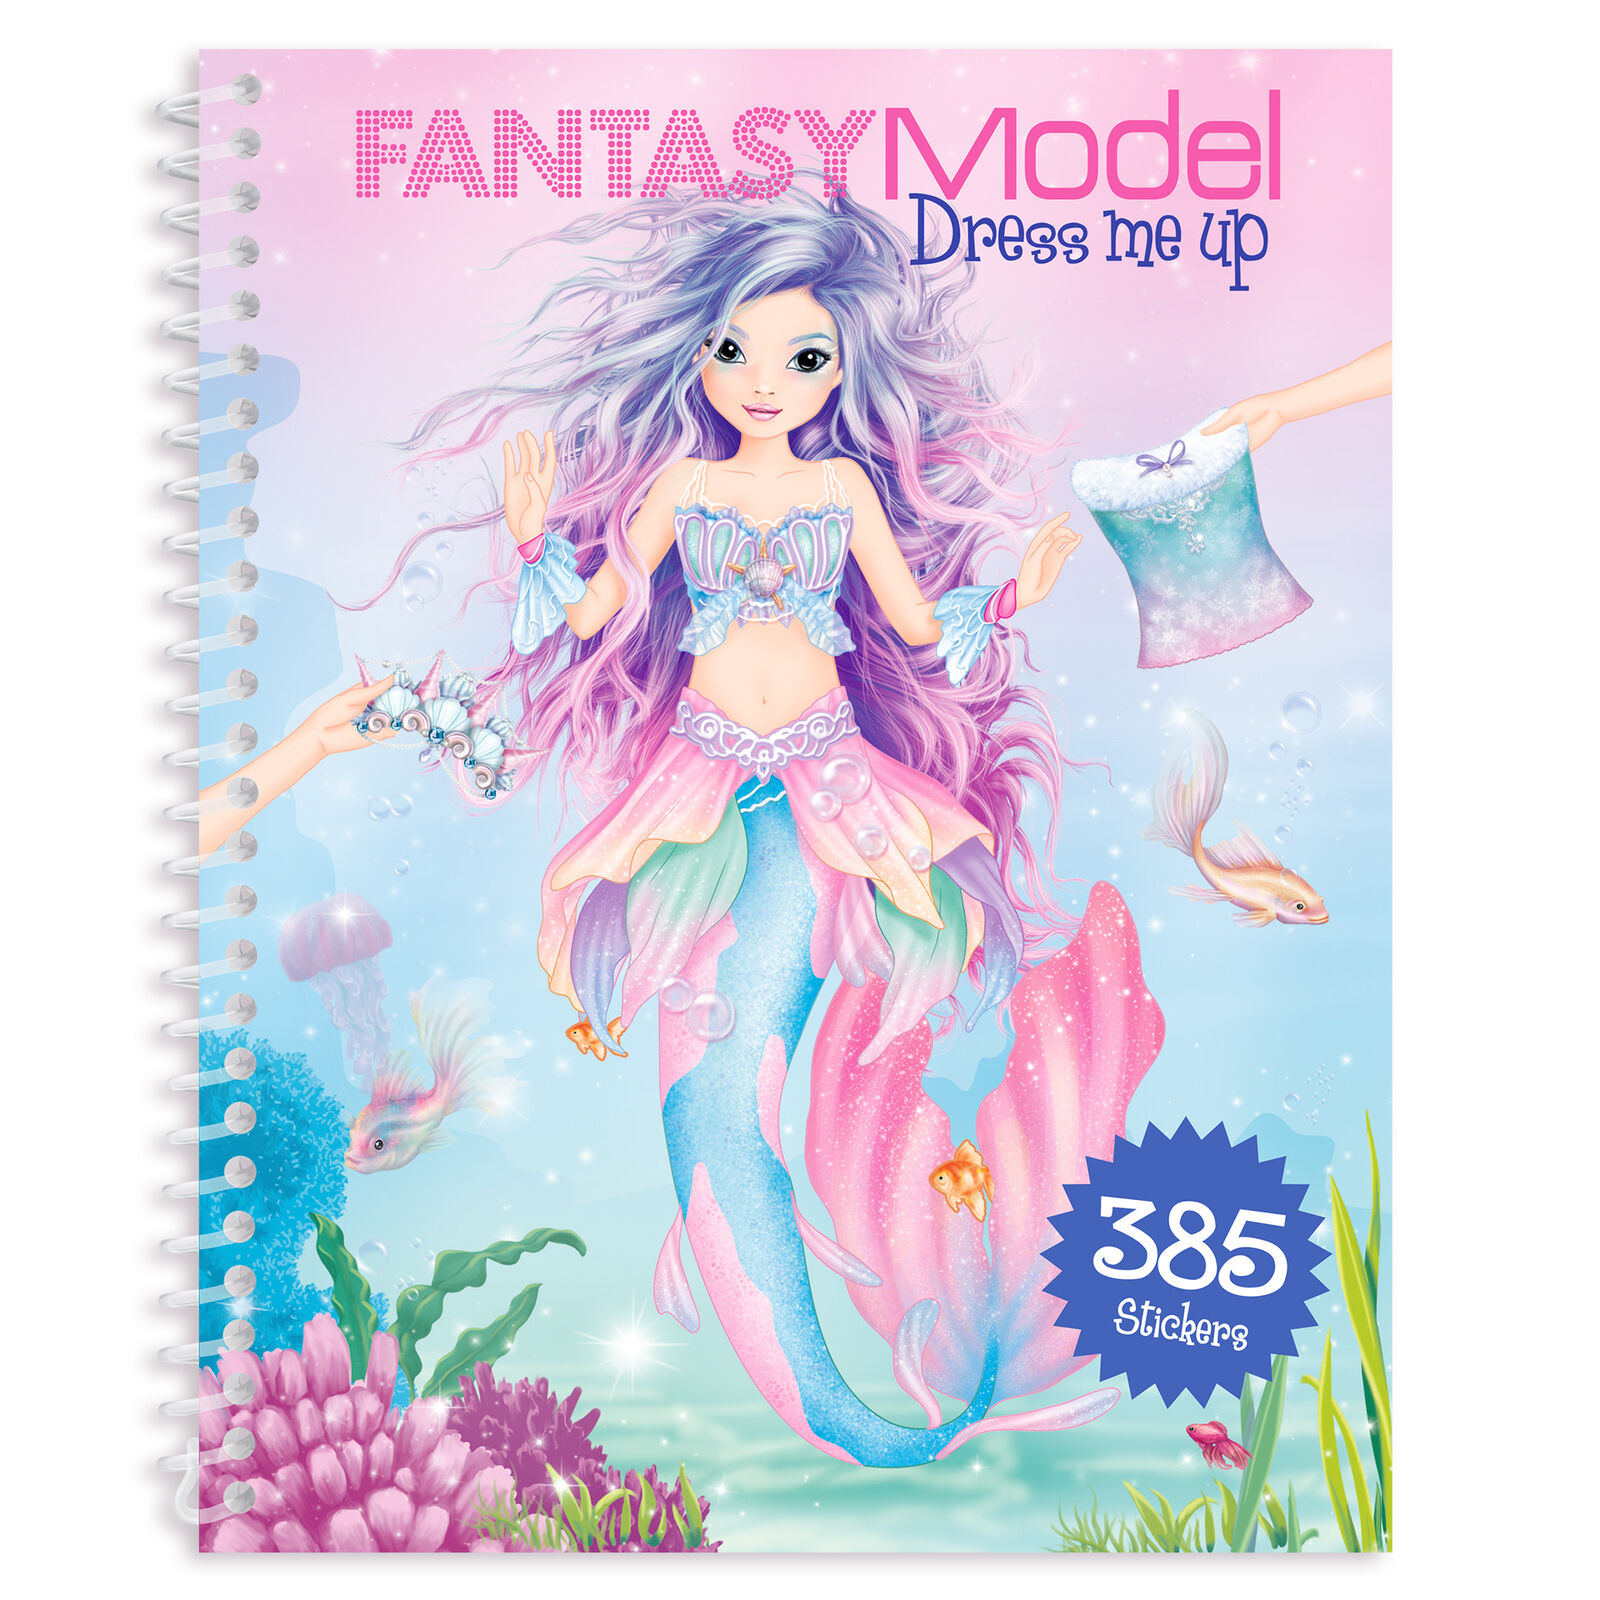 Fantasy Model Dress me up Stickerbook Malbuch TOPModel Depesche 385 Sticker